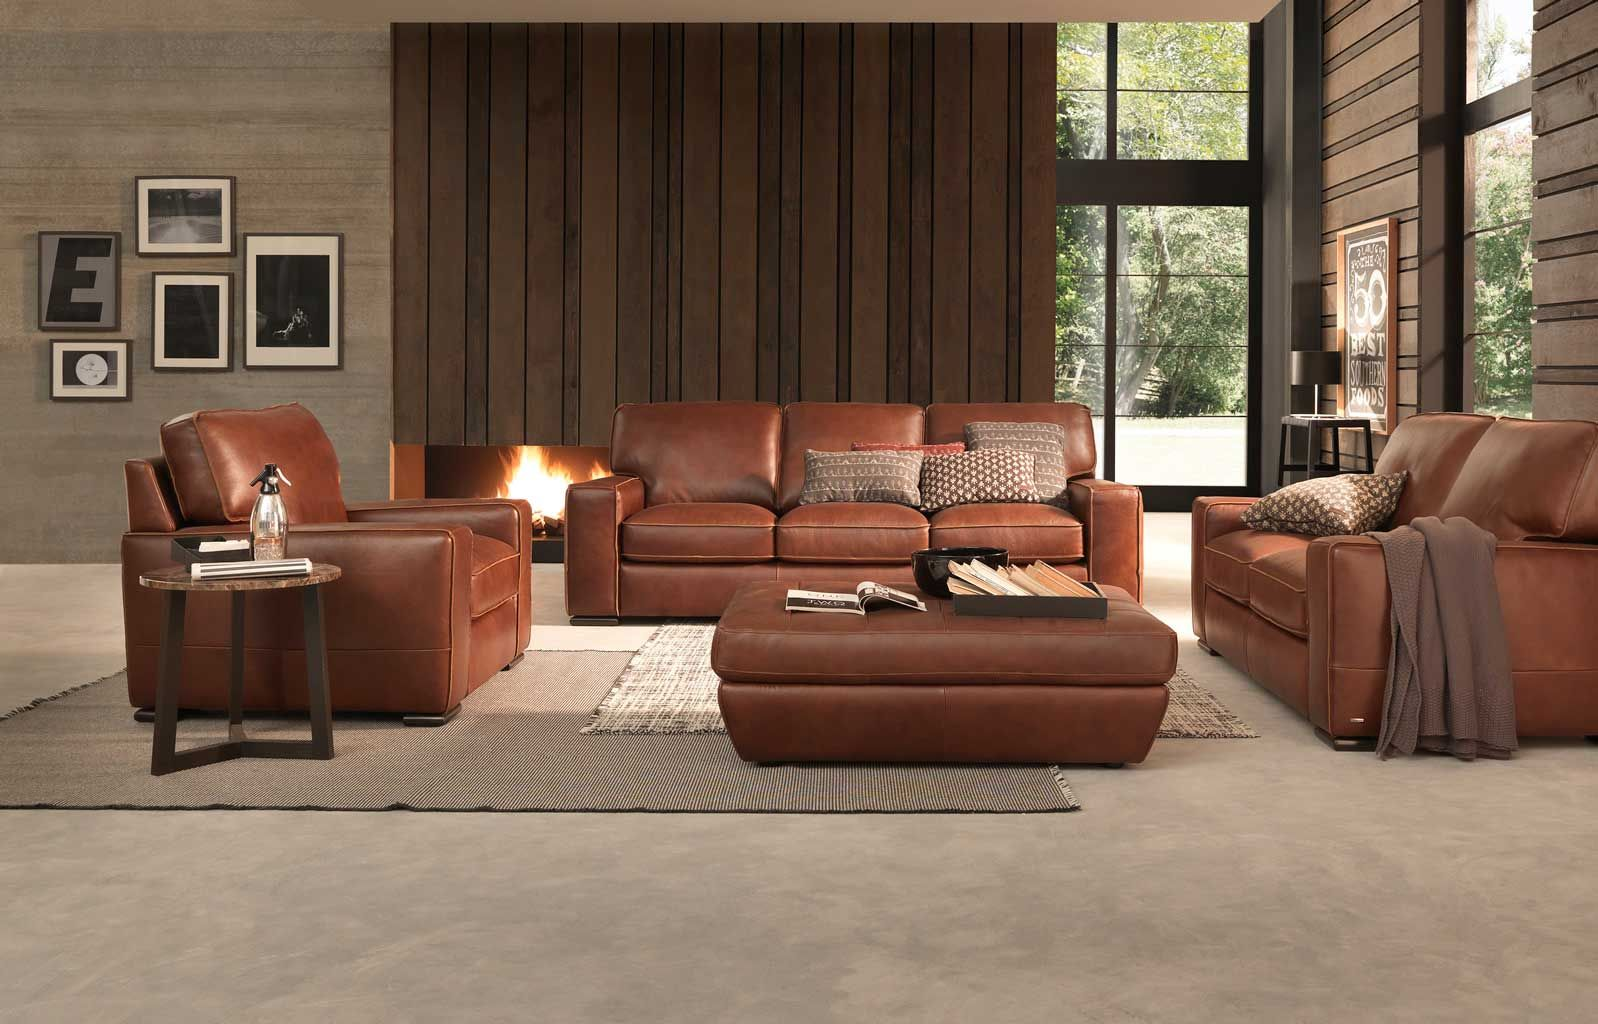 Admirable Natuzzi Editions Leather Sofa Bed Brown Leather Sofa Bed Caraccident5 Cool Chair Designs And Ideas Caraccident5Info